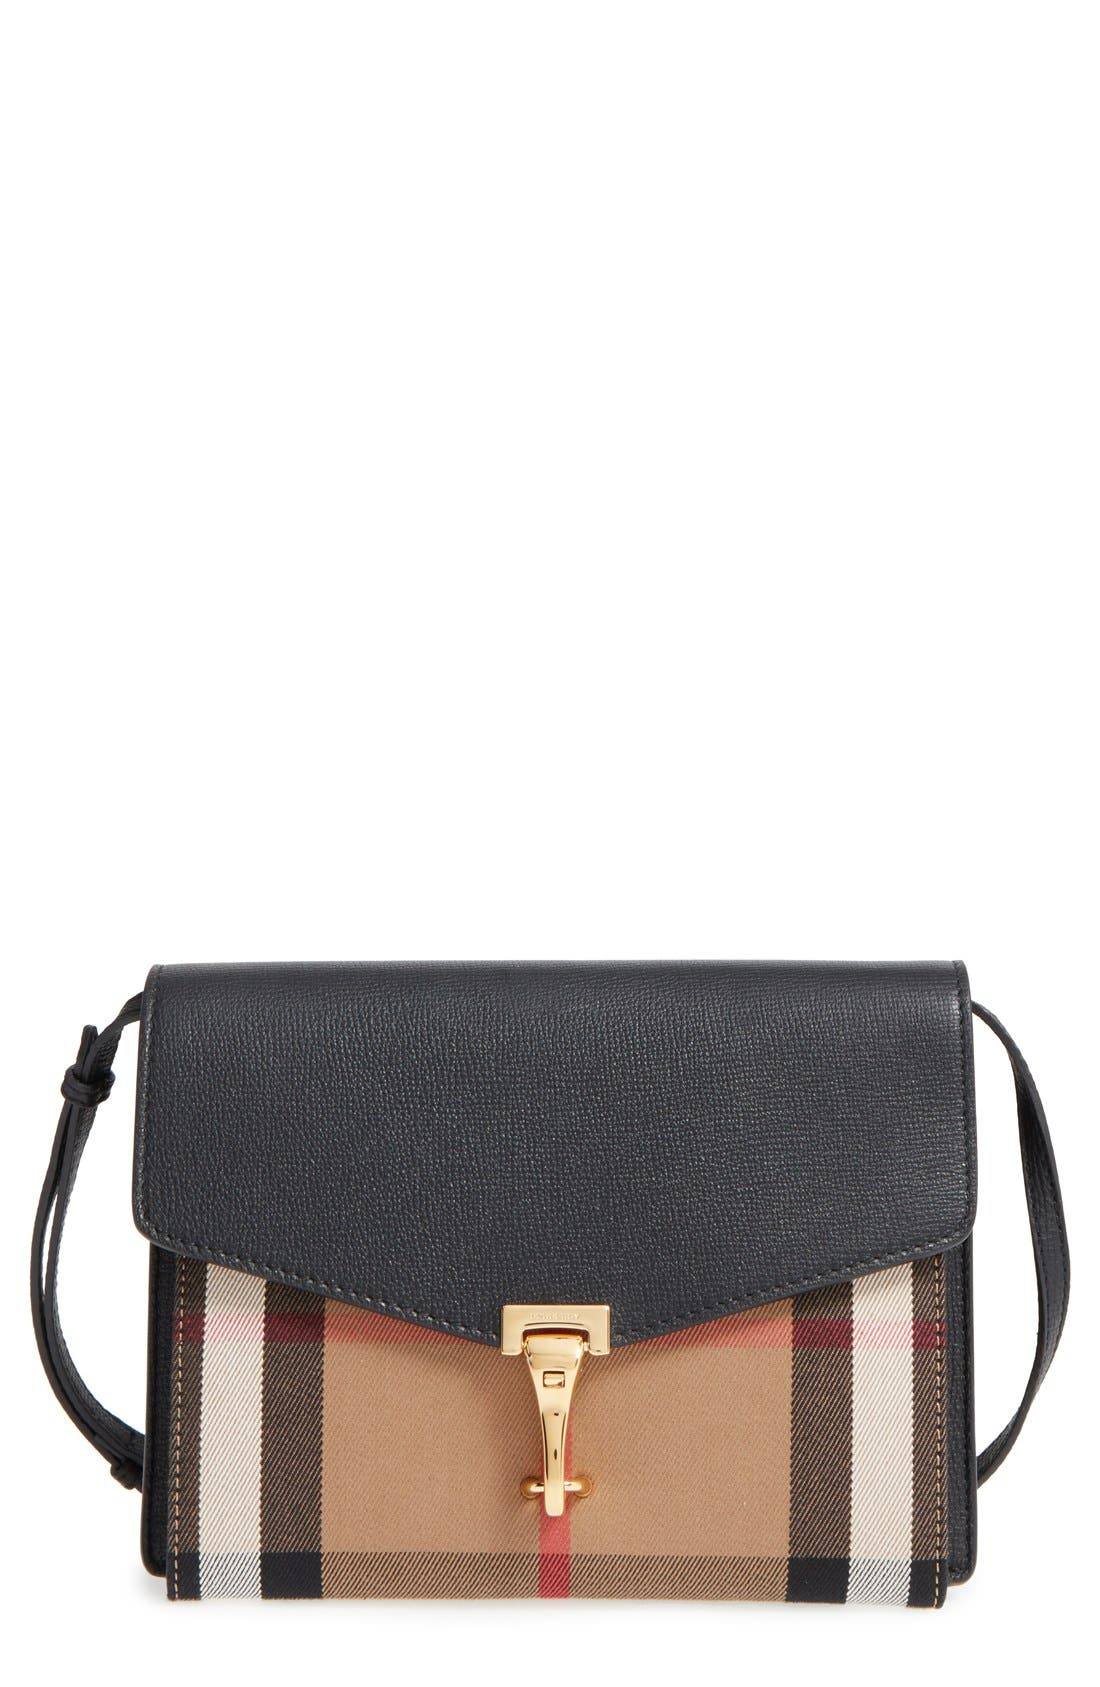 BURBERRY Small Macken House Check Crossbody Bag